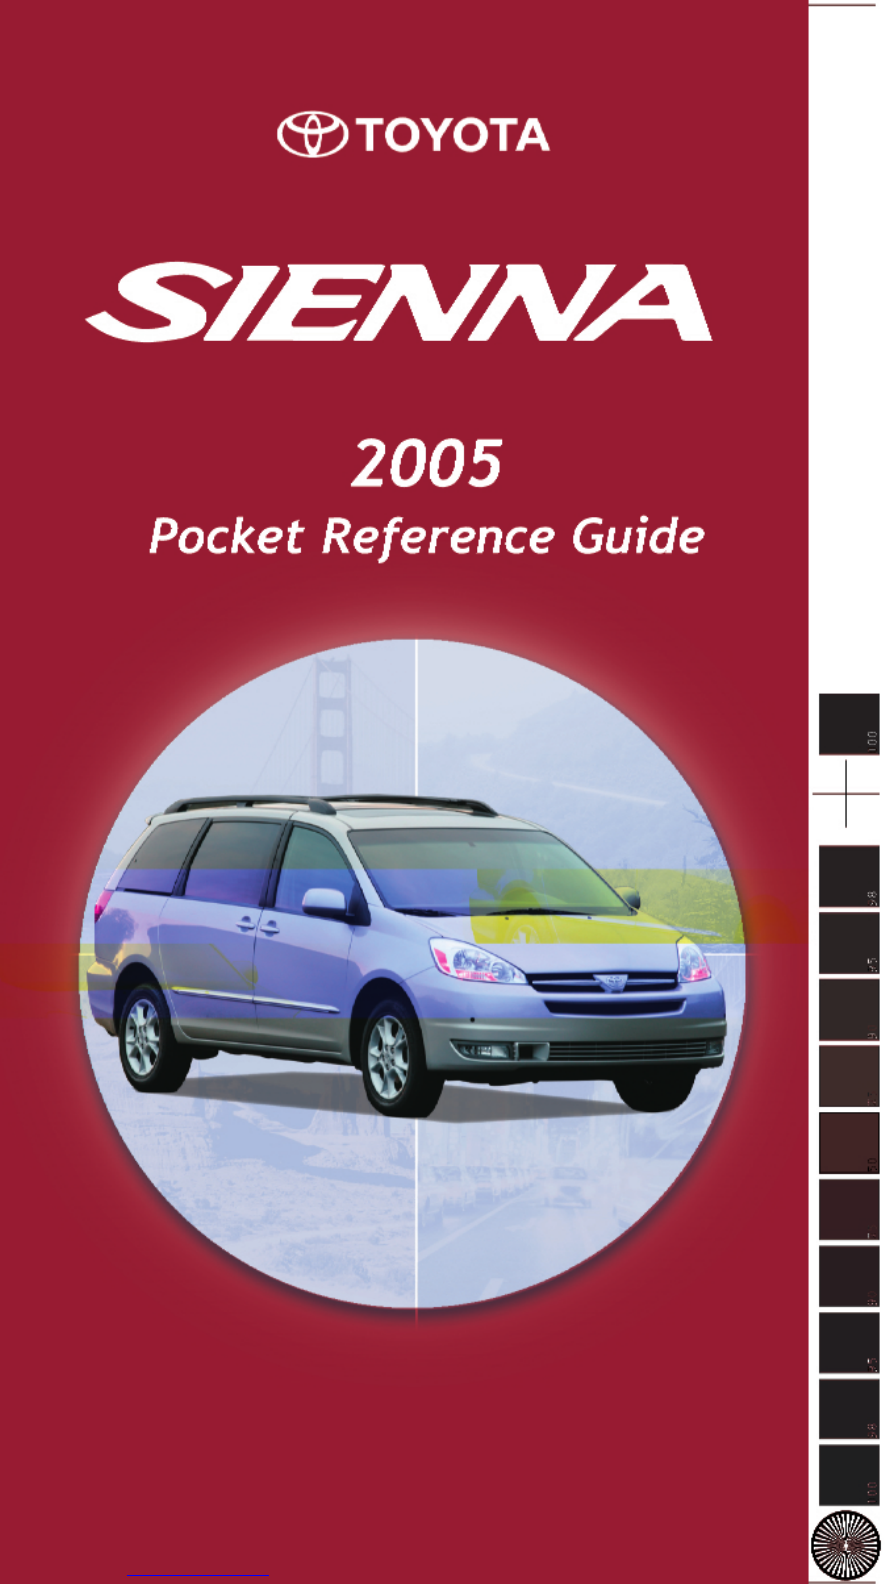 Toyota Sienna 2010-2018 Owners Manual: Basic Operations